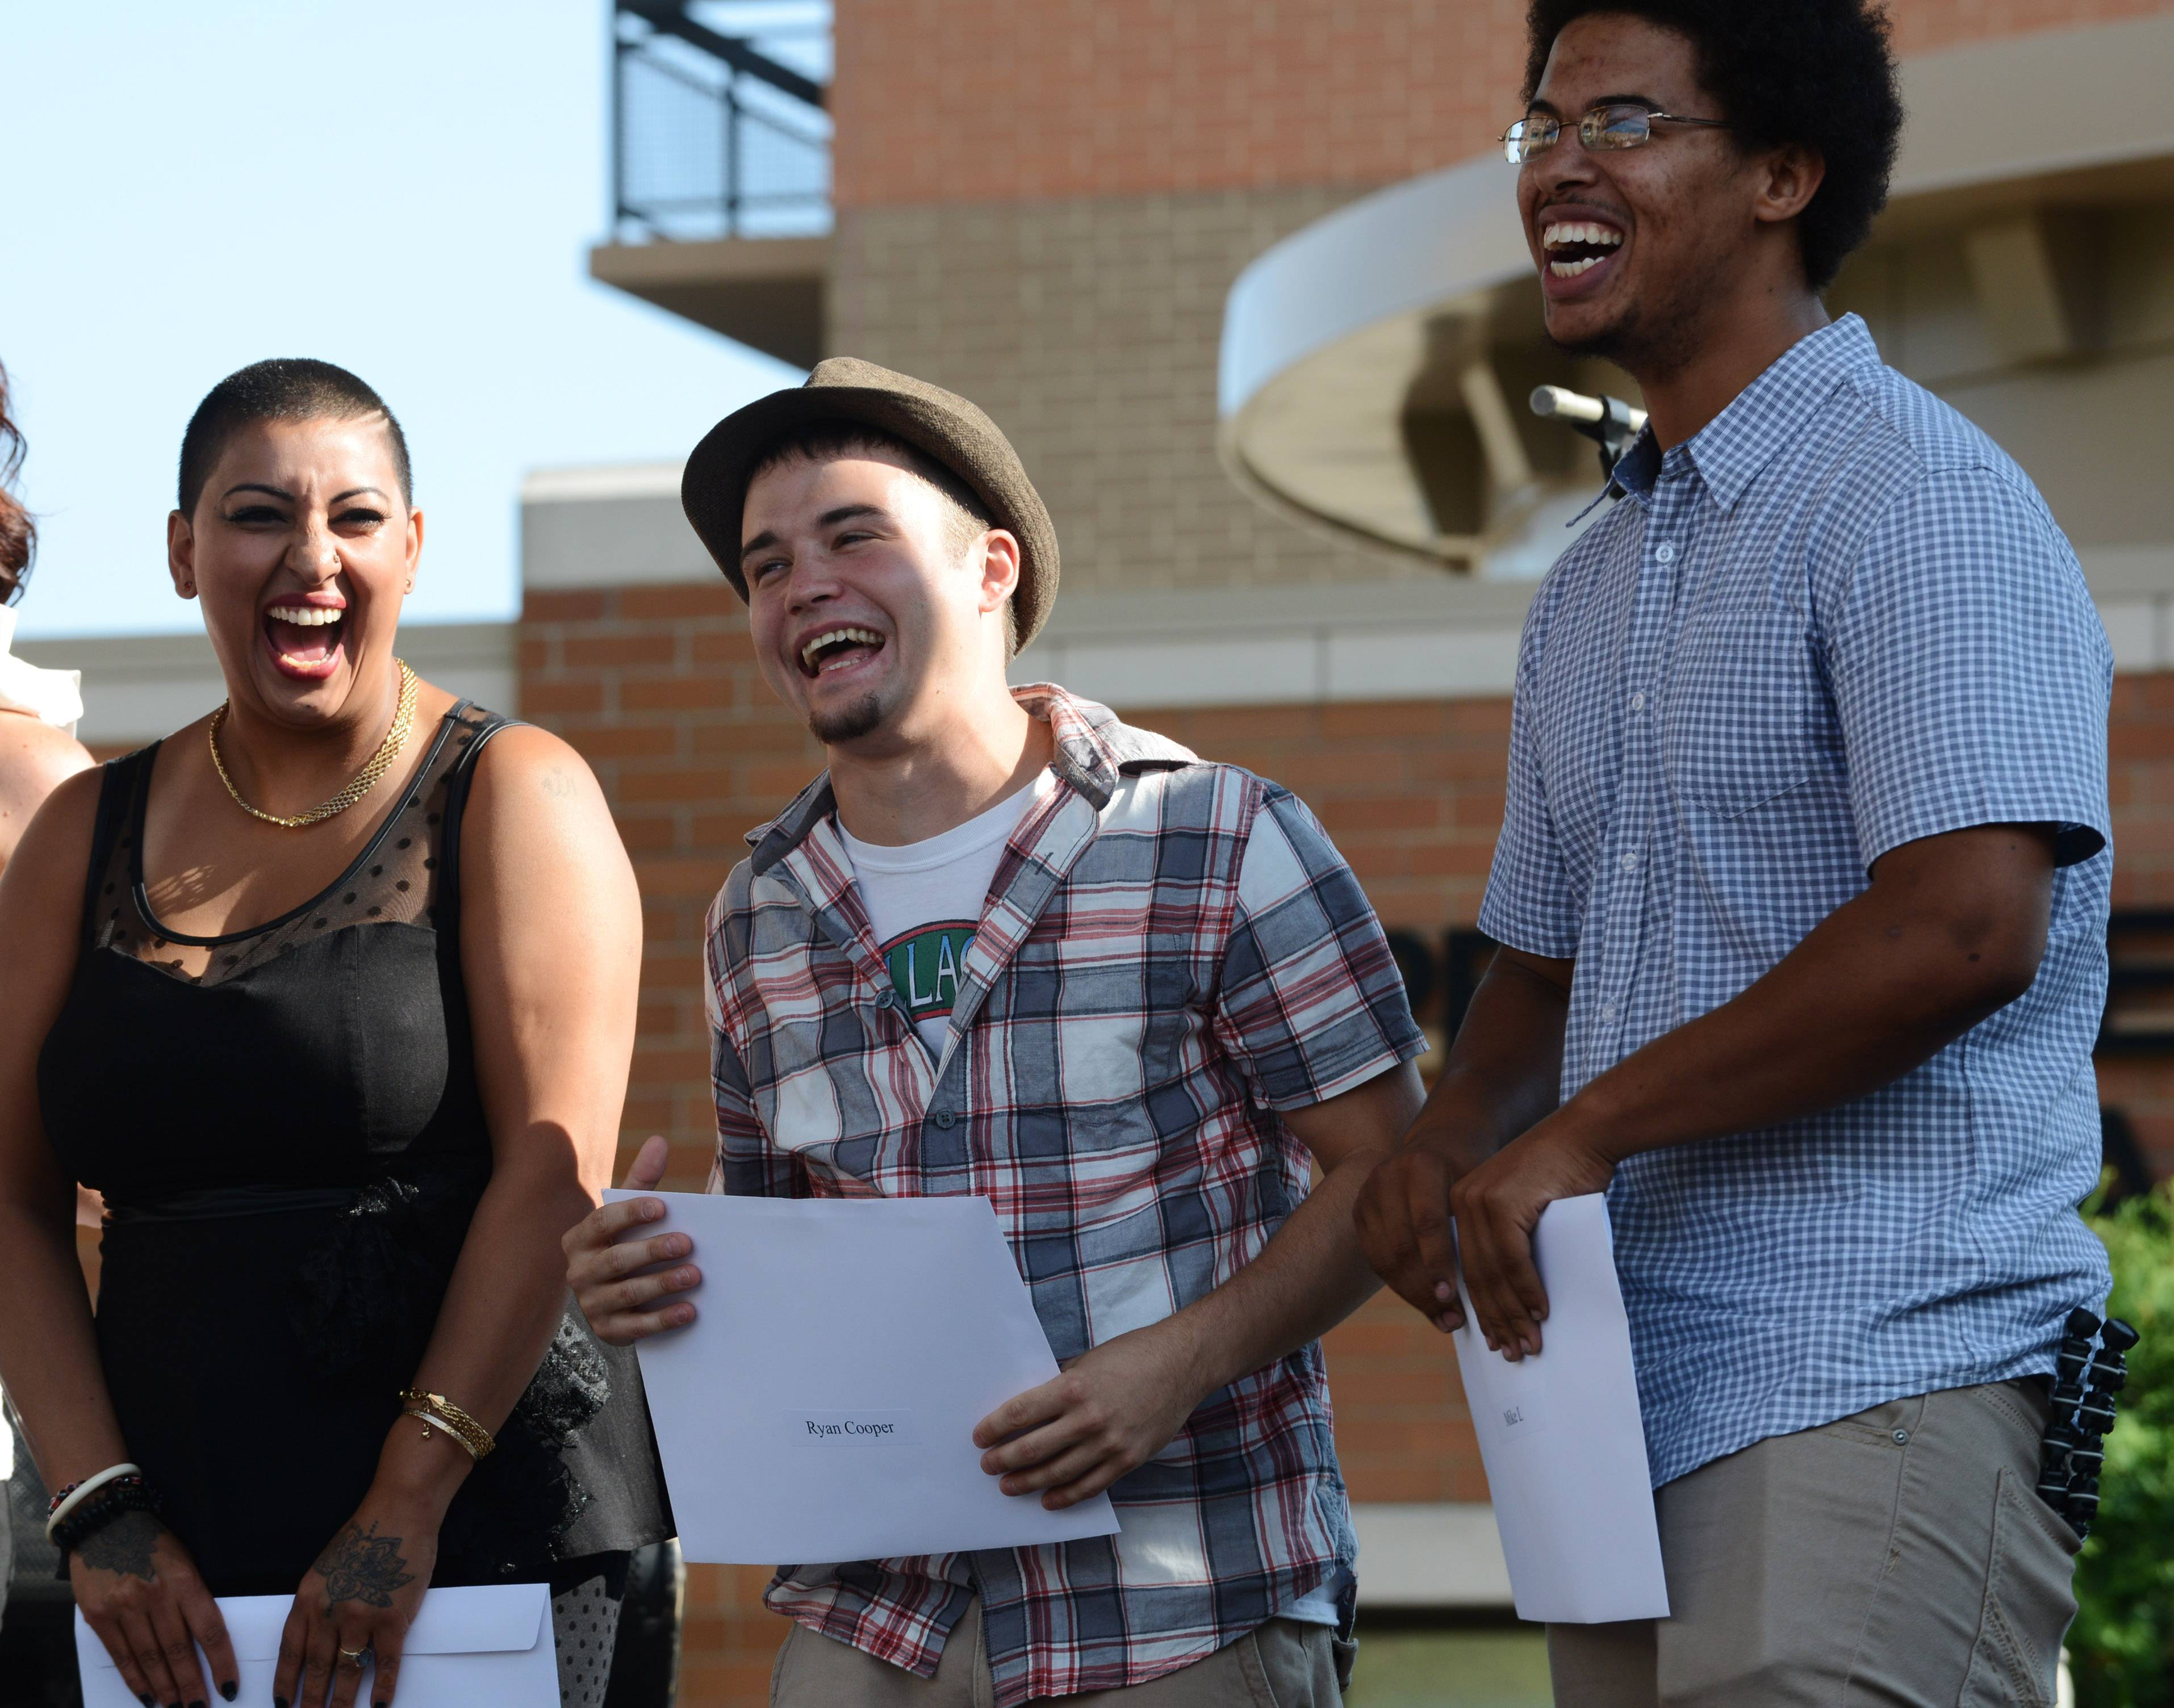 Contestants, from left, Farah Morales of Mount Prospect, Ryan Cooper of Schaumburg and Michael Lueck of Des Plaines stand to get onstage during the Suburban Chicago's Got Talent competition at Saturday's finale in Arlington Heights.